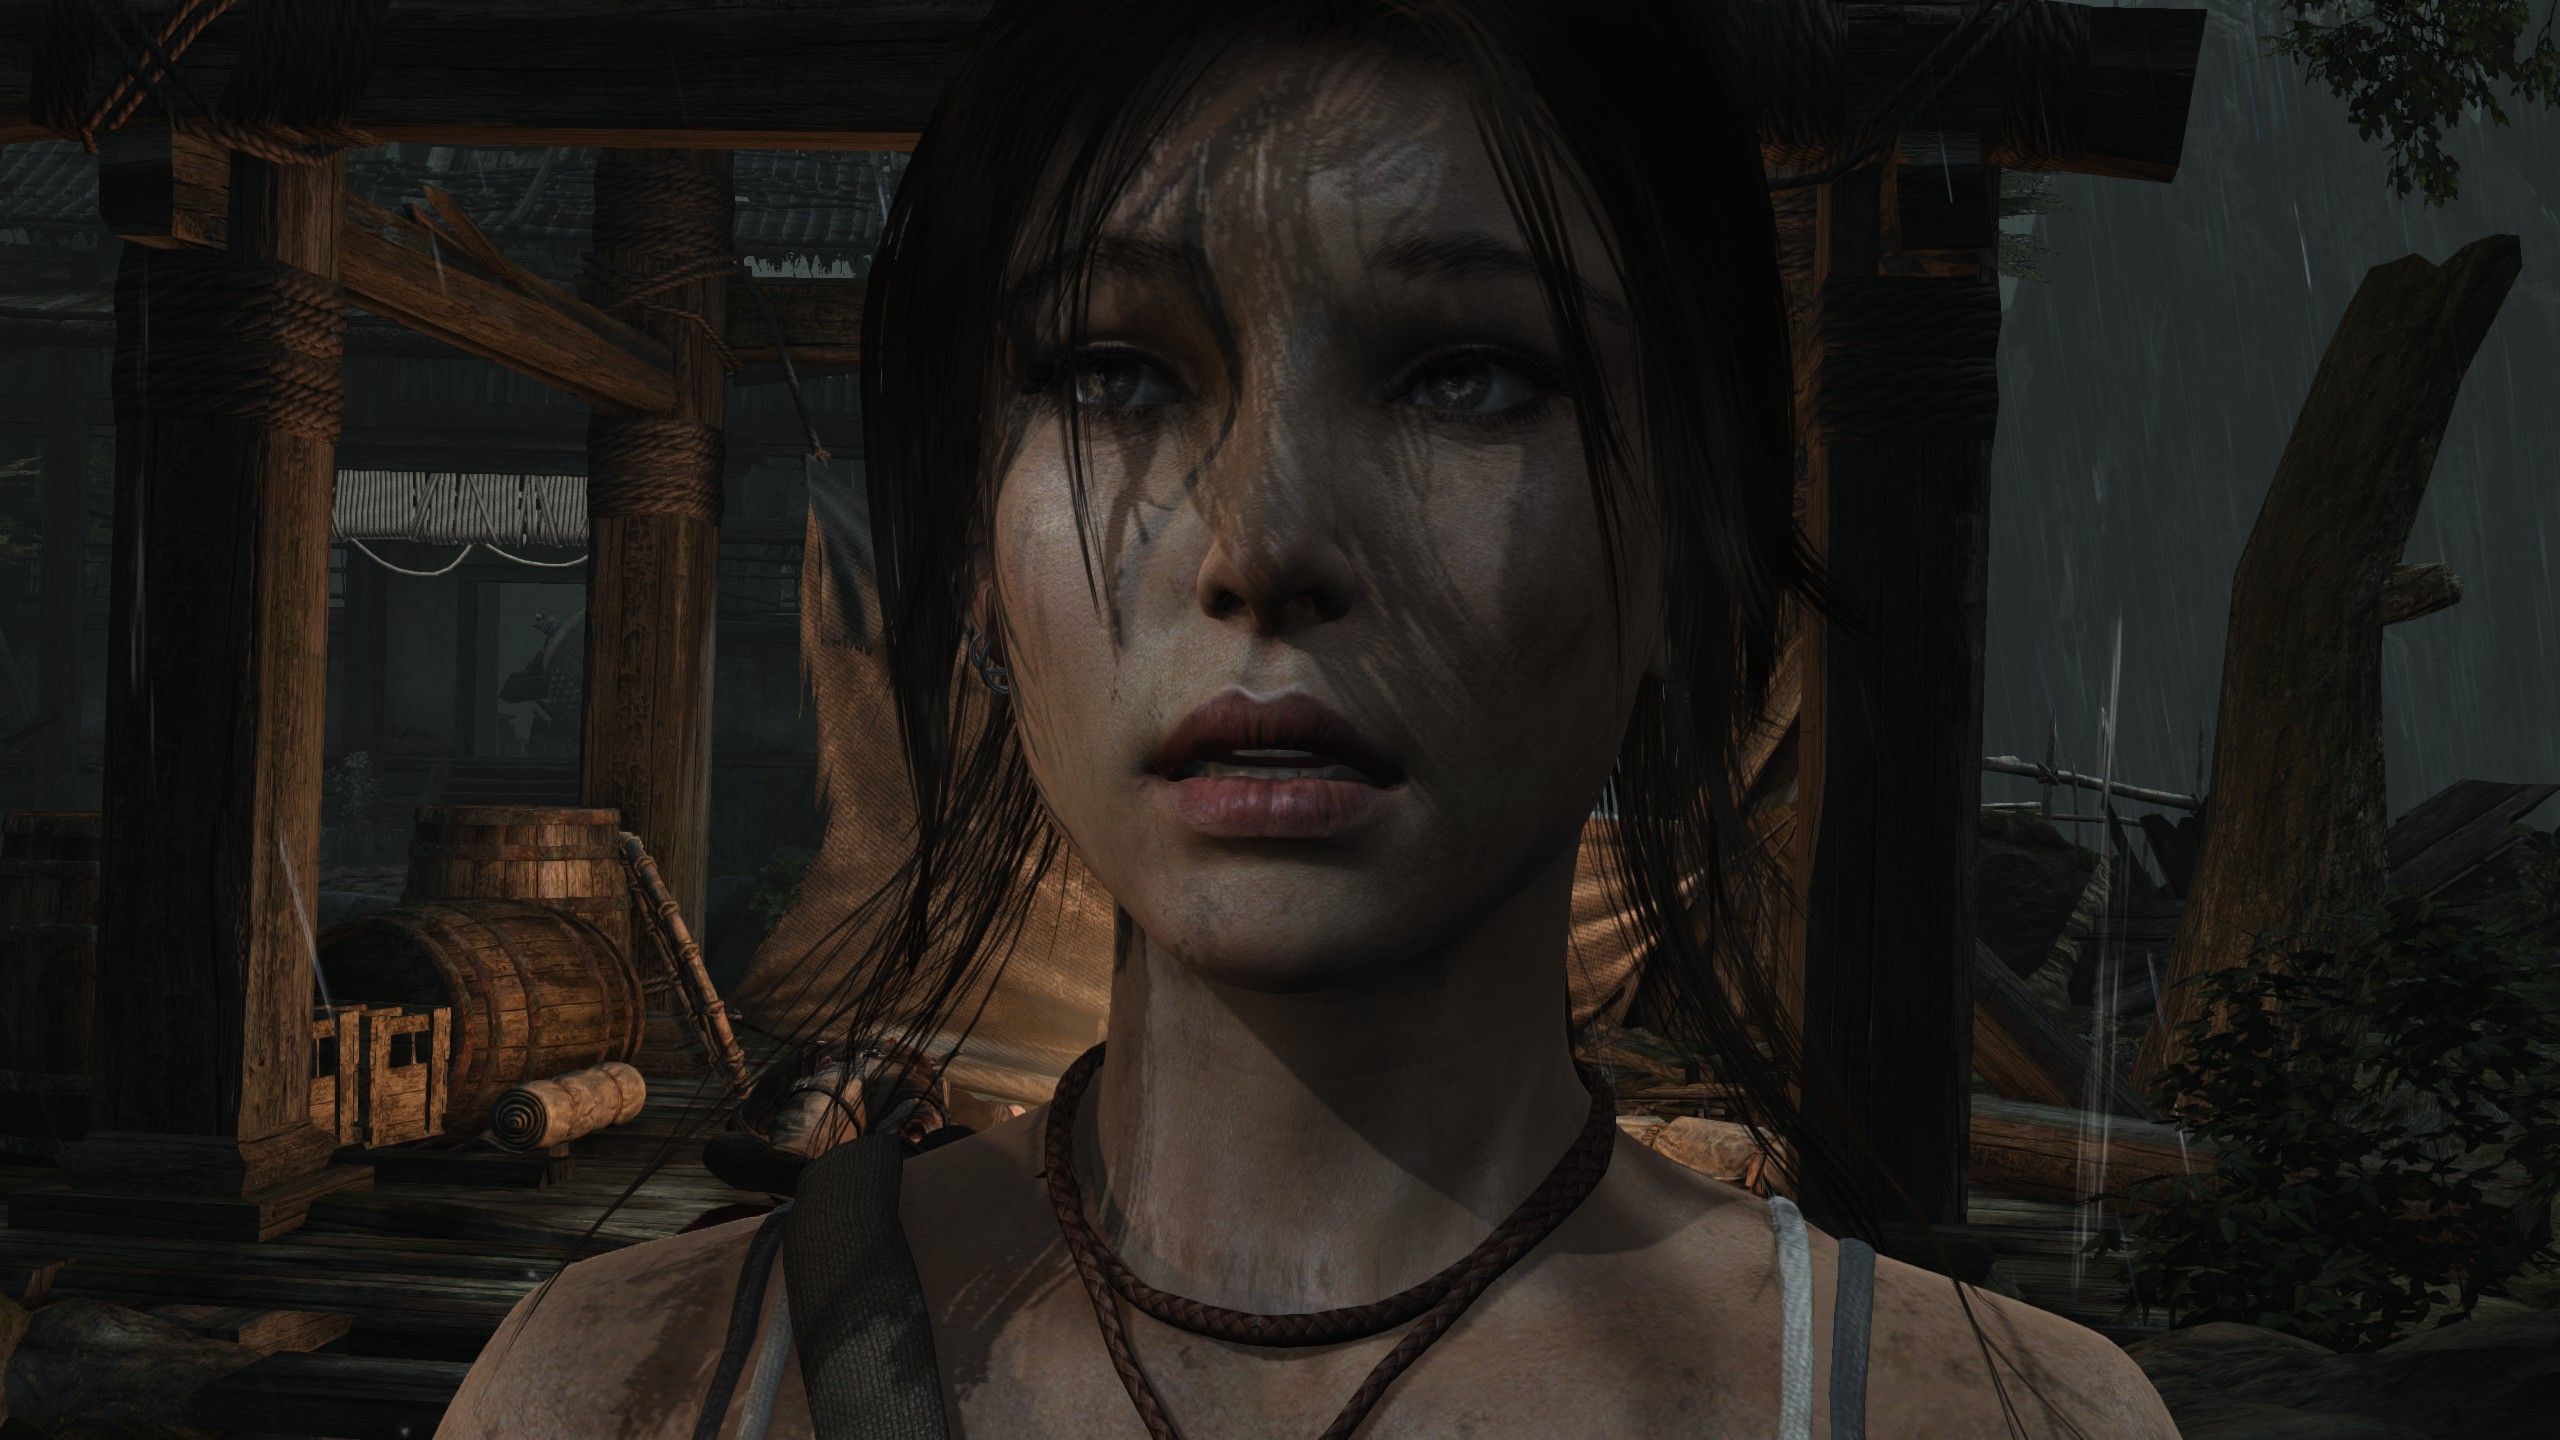 AMD says its TressFX tech, as used in Tomb Raider, is far more efficient than HairWorks.